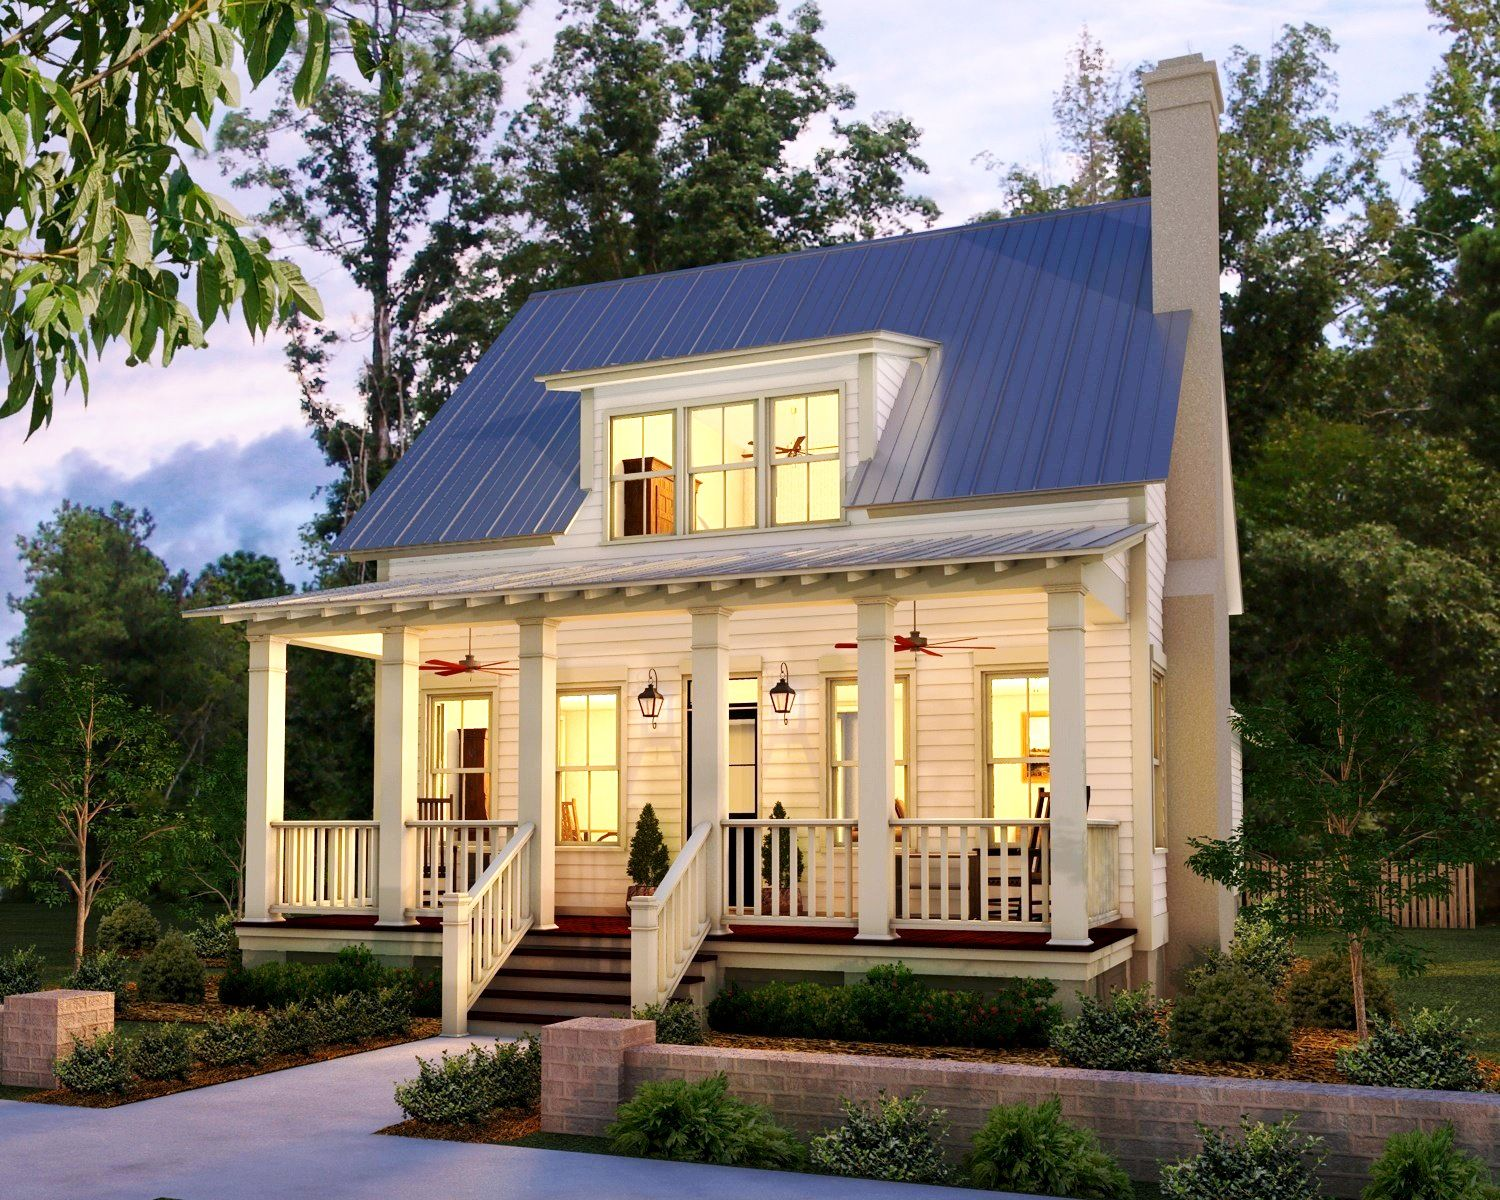 Saluda River Club - Collection of Homes - Columbia, SC @Megan Ruhlman I  found. Little CottagesSmall CottagesCute ...